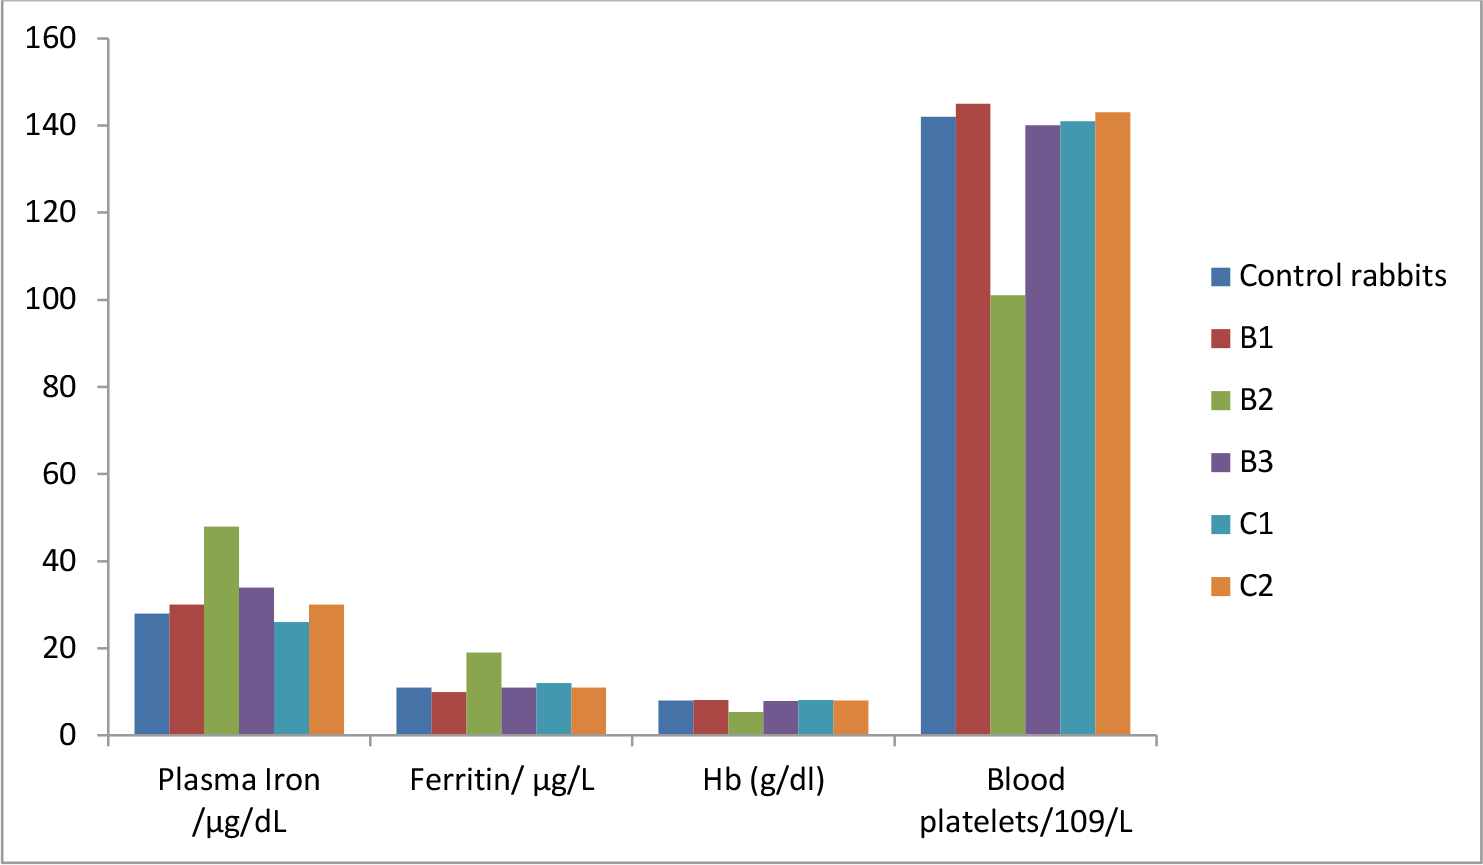 Assessment of Plasma Iron, Feritin, Blood Platelets and Hemoglobin Concentration in Rabbits Given Amoxicillin Overdose Supplemented with Raw Cucumber Juice